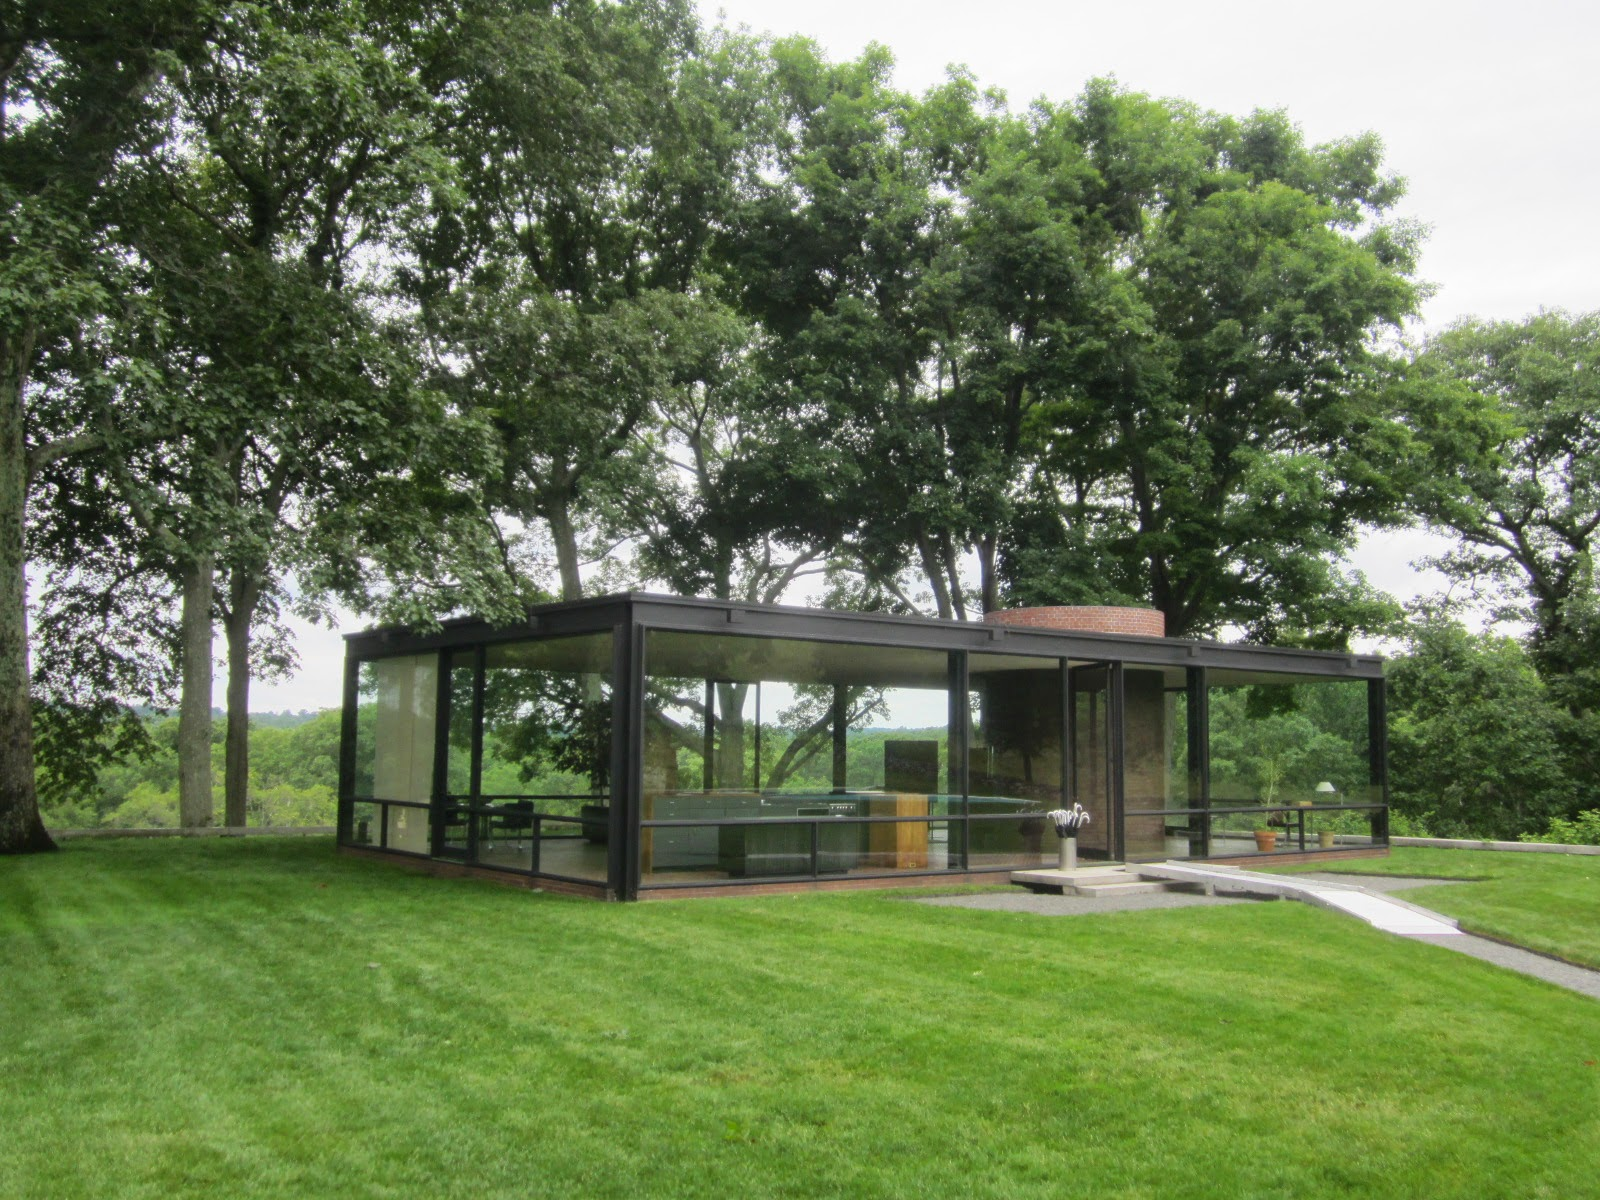 The myth of home philip johnson 39 s glass house - Philip johnson glass house ...